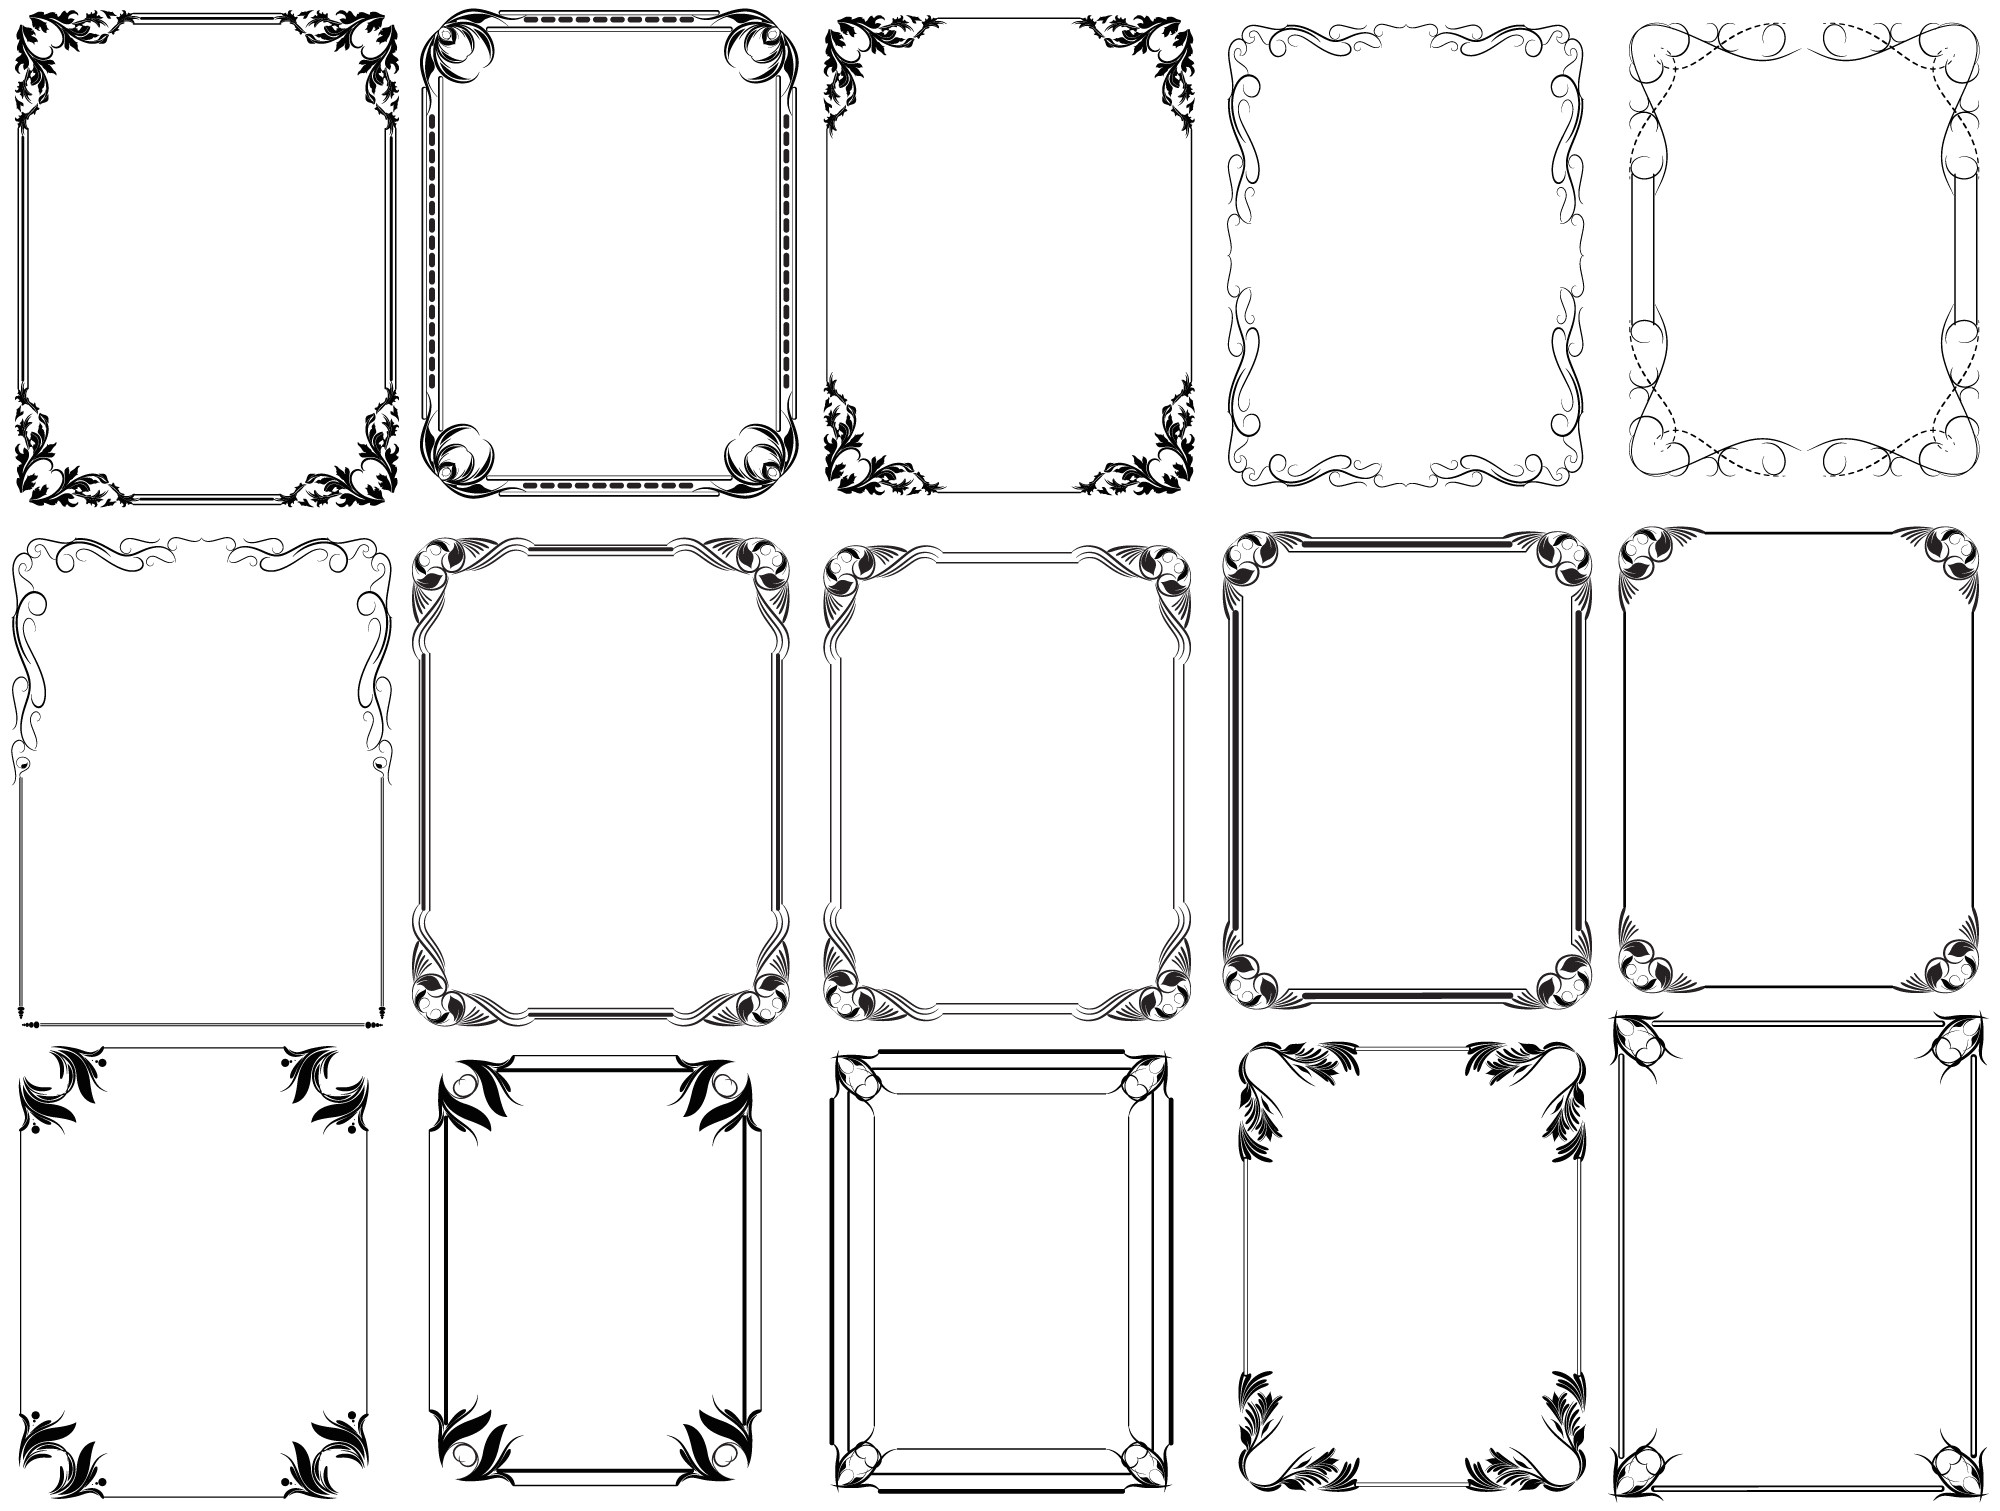 Picture Frame Templates for Photoshop 10 Free Photoshop Frames Png Images Free Photoshop